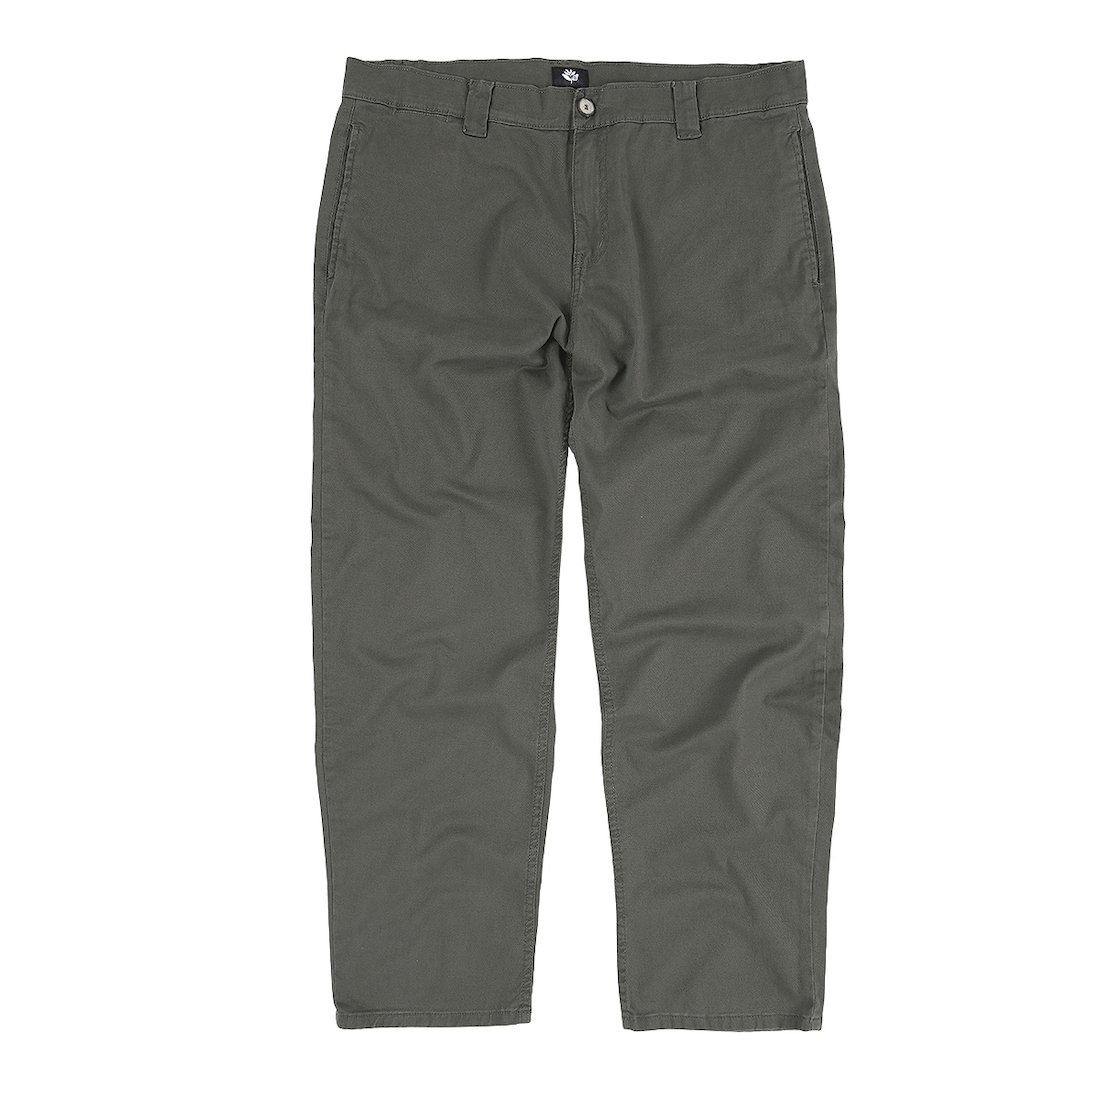 【Magenta Skateboards】ToucTouc Chino Pants - Green